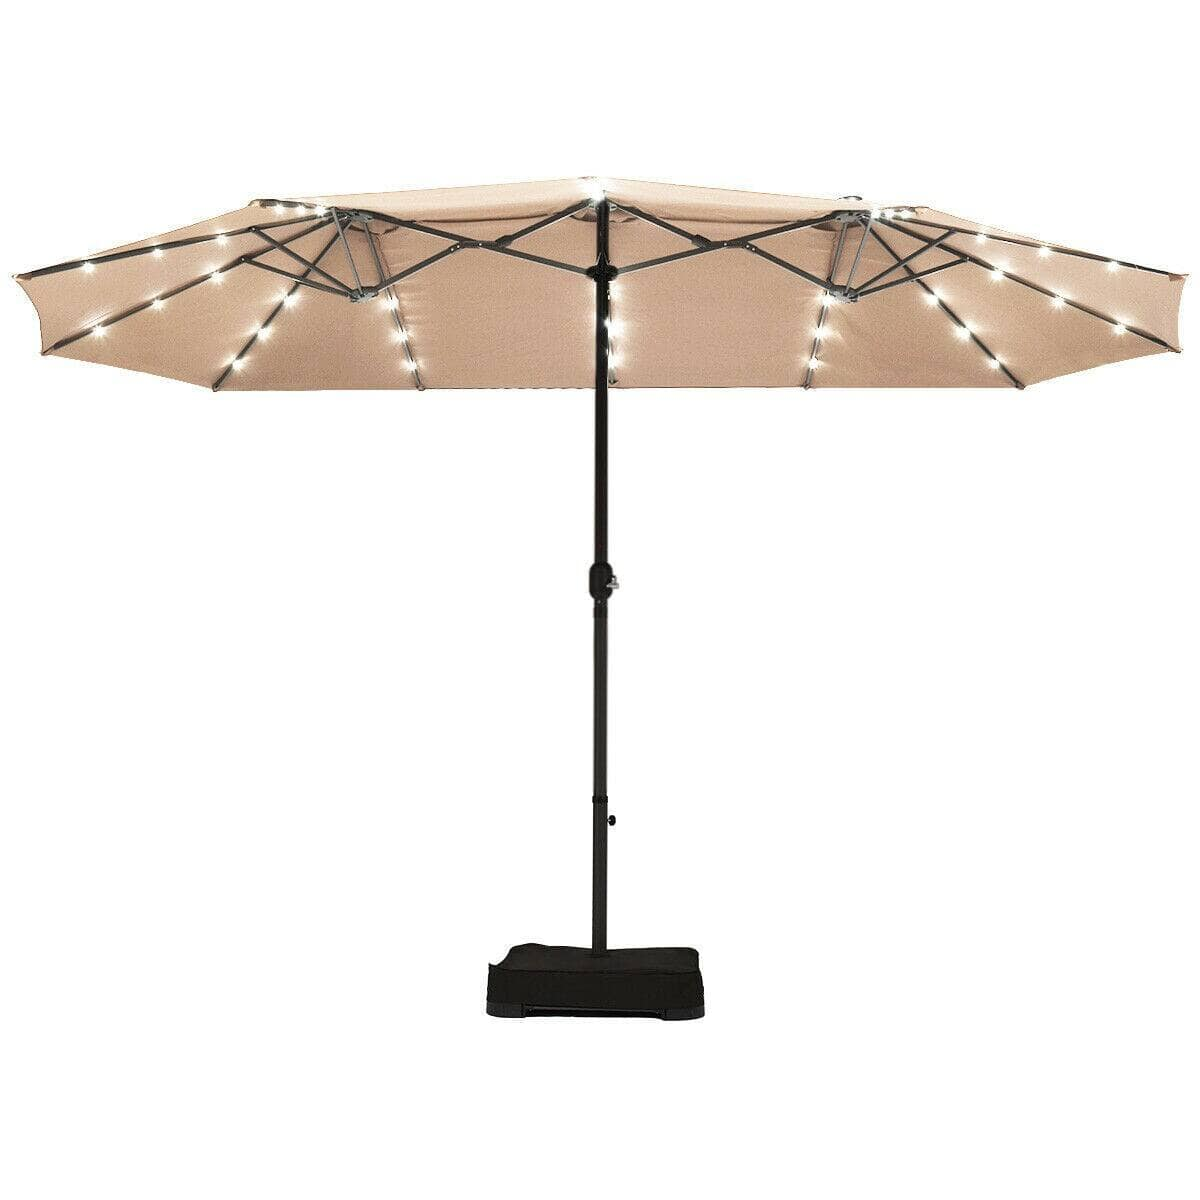 Costway 15 Ft Solar LED Patio Double-sided Umbrella Market Umbrella with Weight Base $203.95